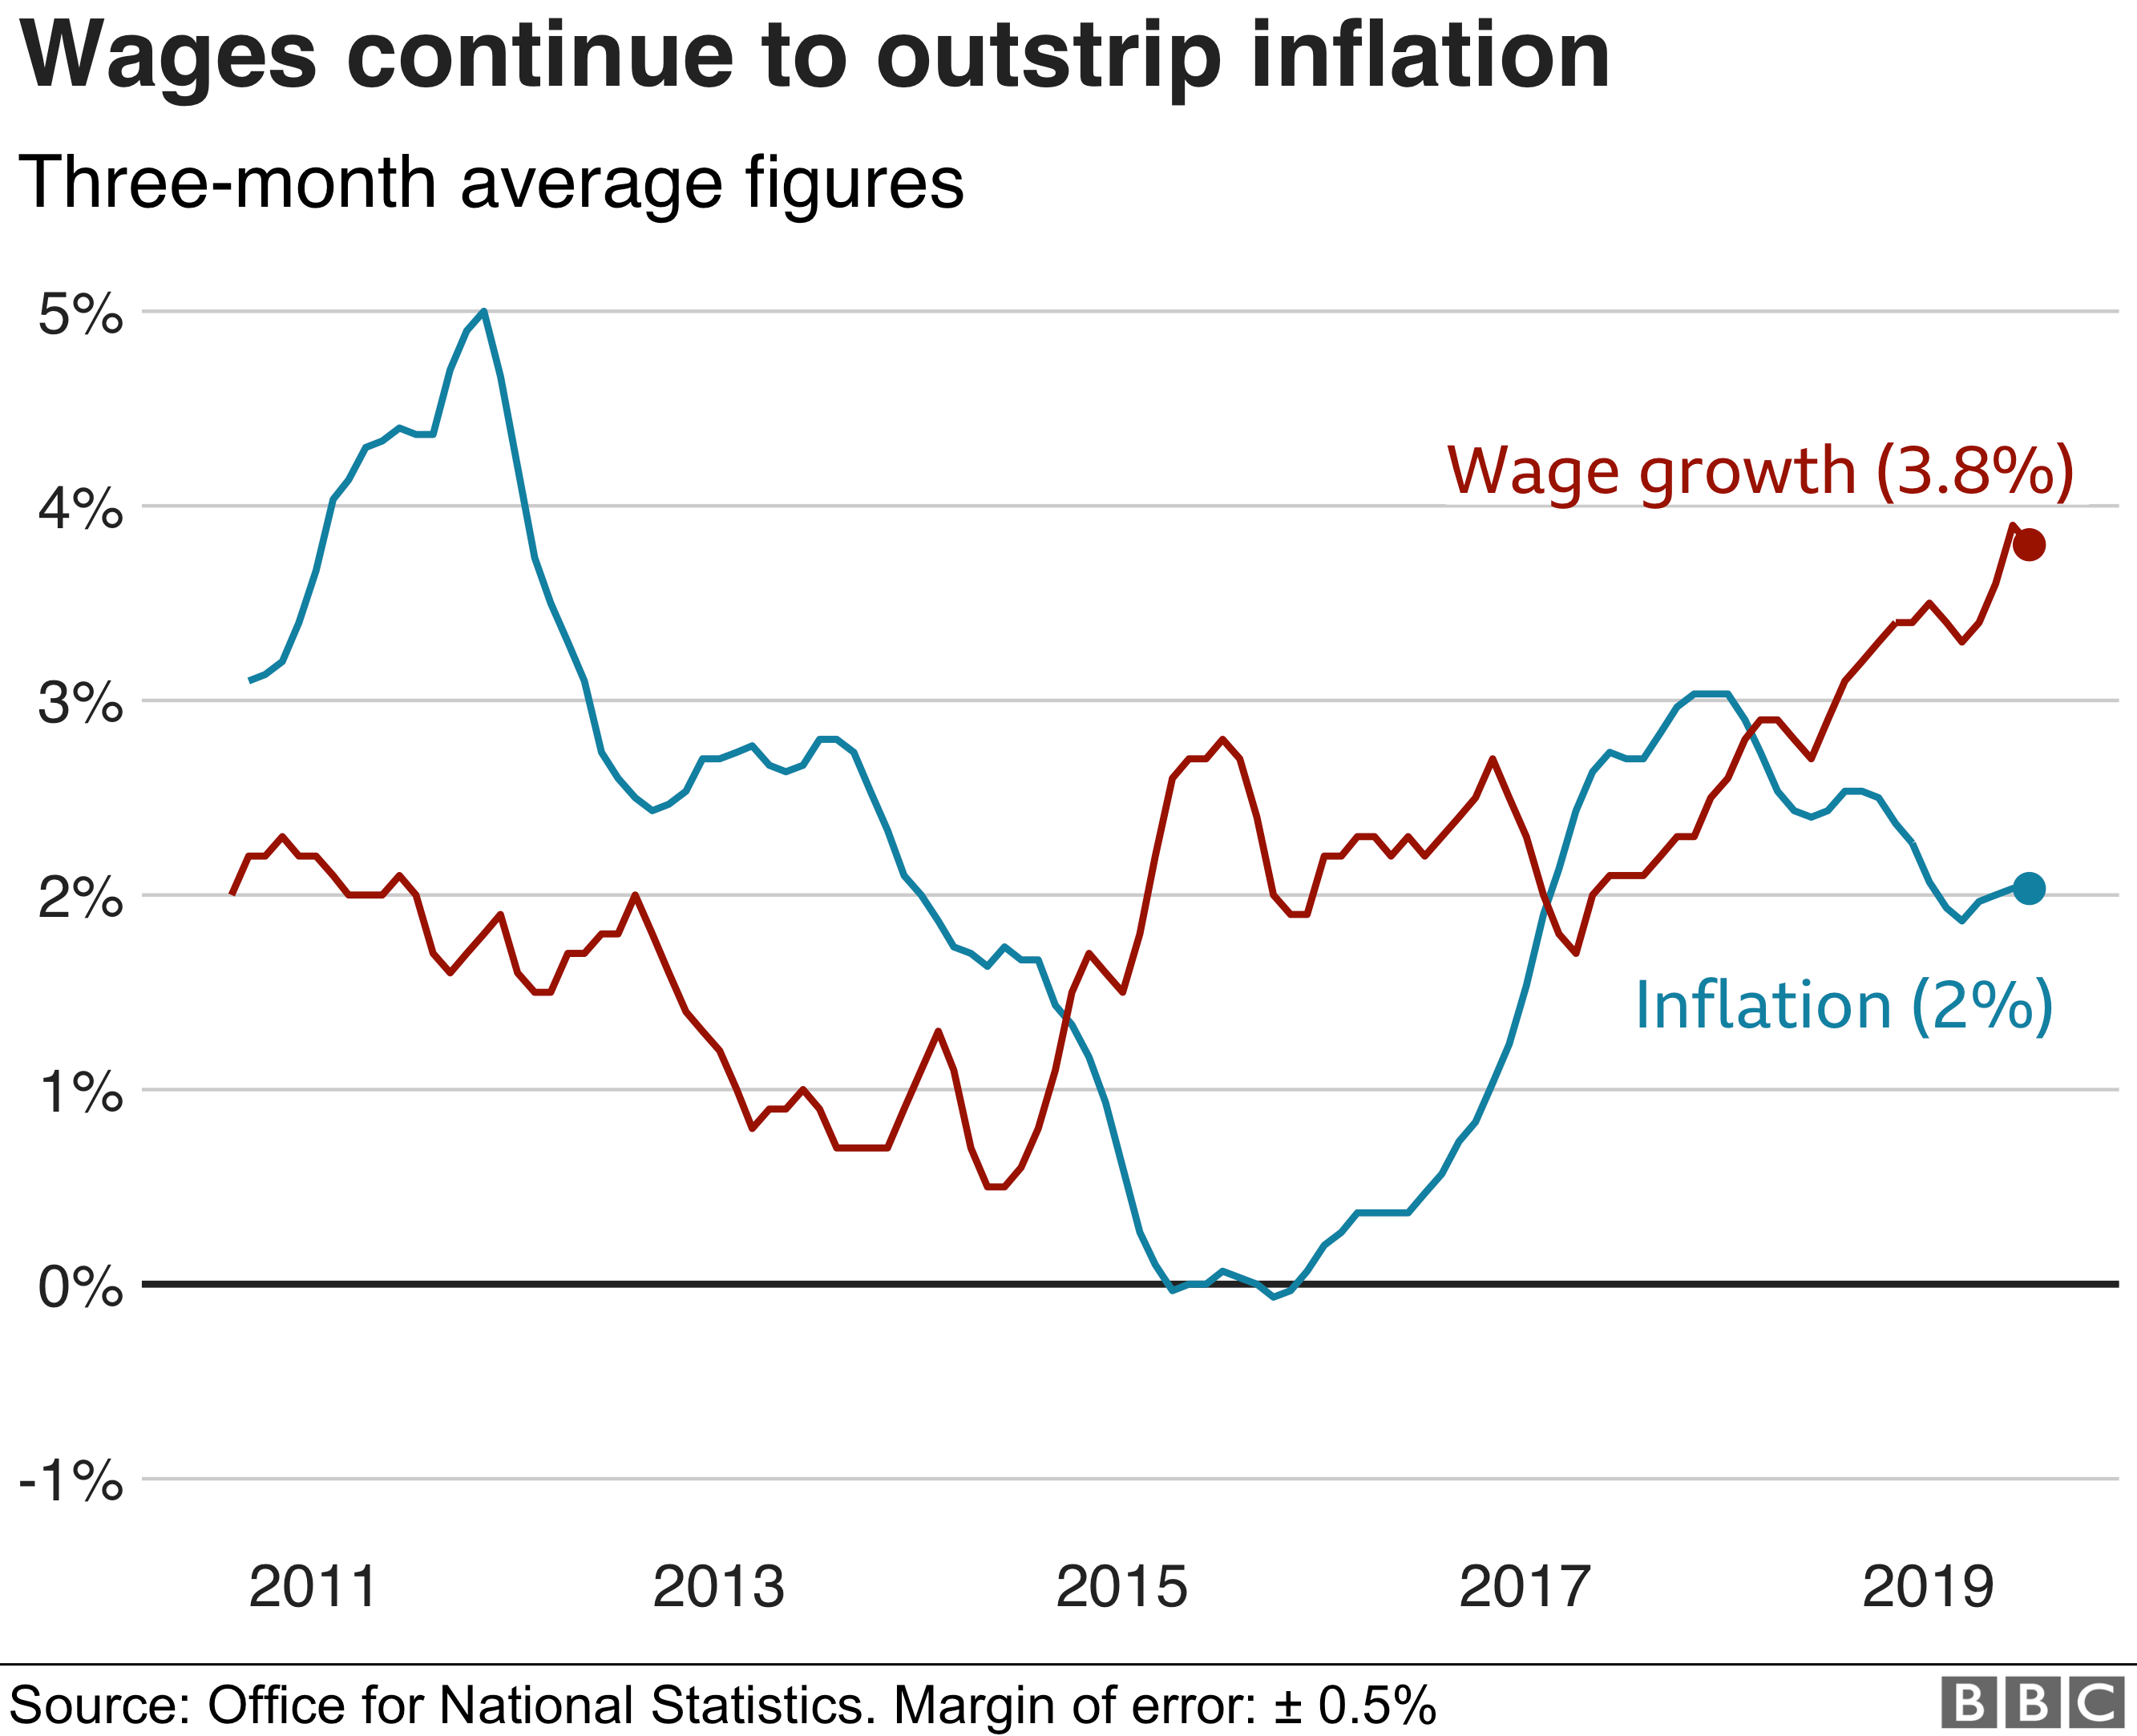 Wage growth v inflation